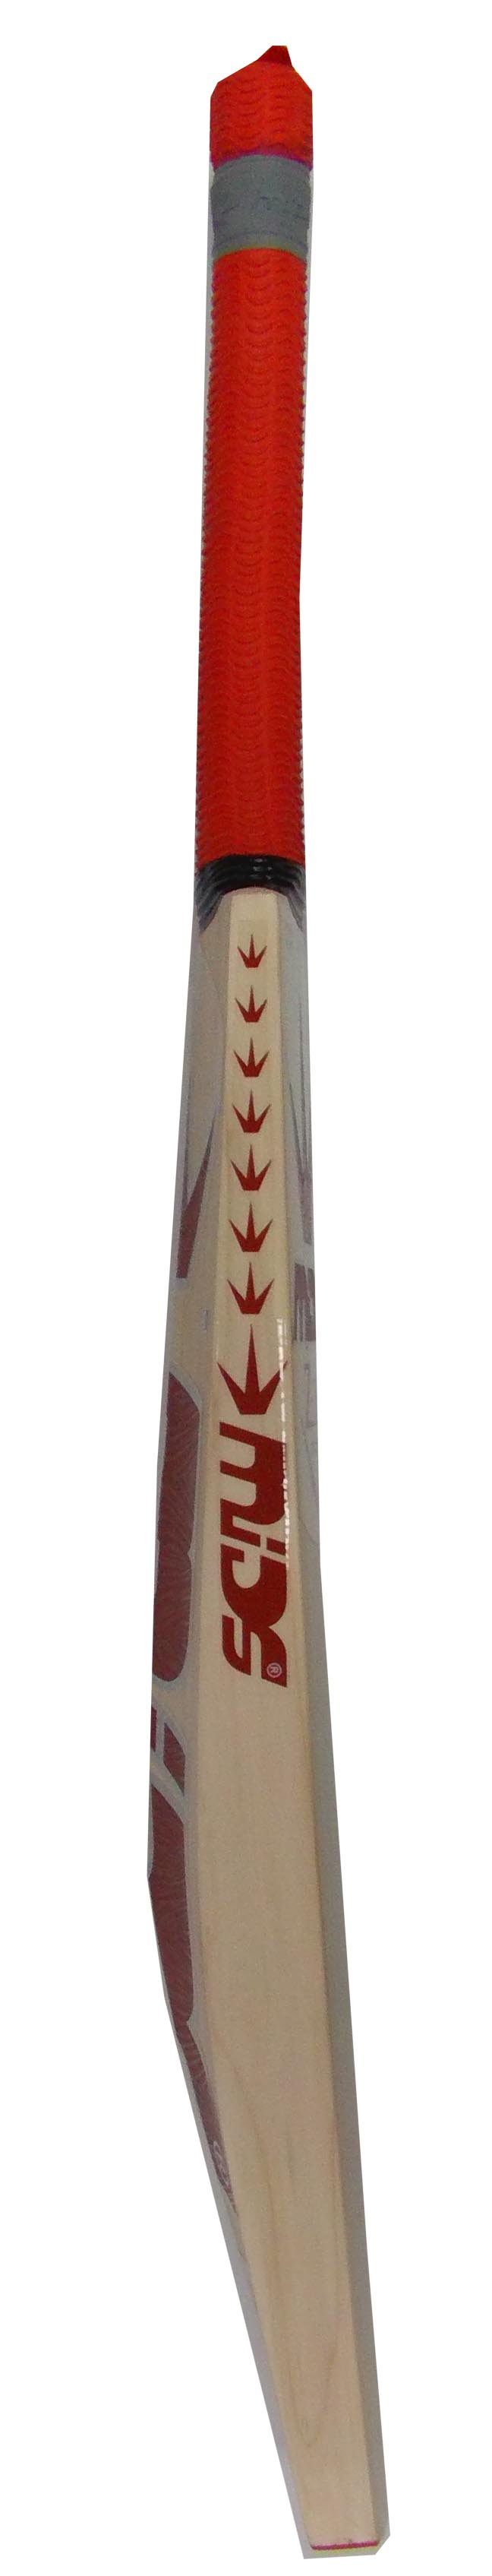 Mids Z Ten Grade 1 English Willow Cricket Bat RRP 399.00 SH Free bag